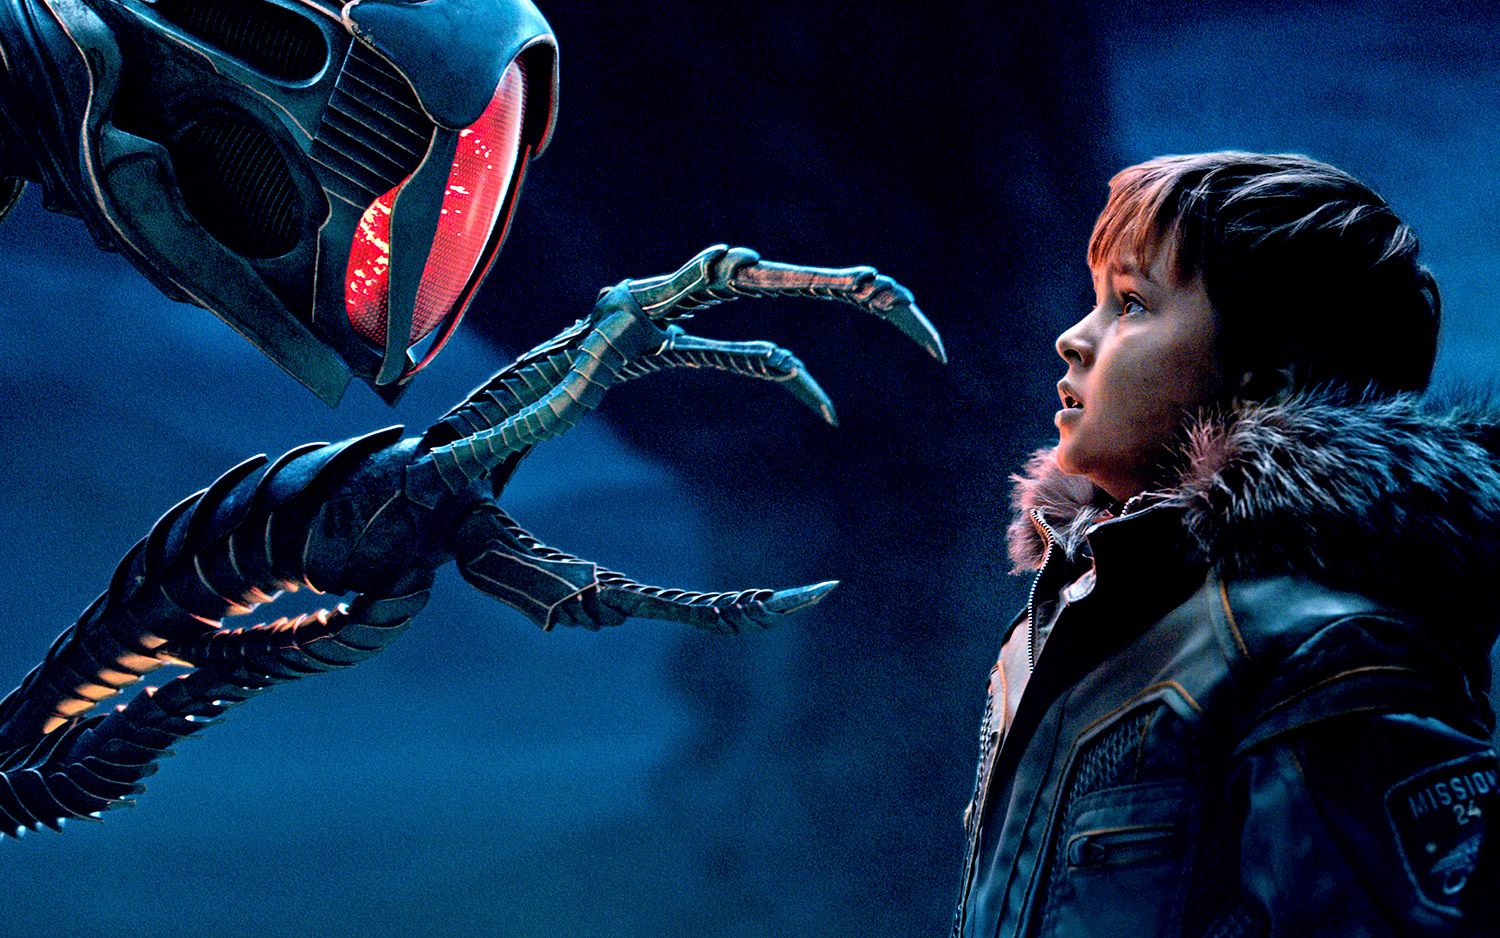 Netflix's 'Lost in Space' Season 1 Now Available on Blu-ray/DVD